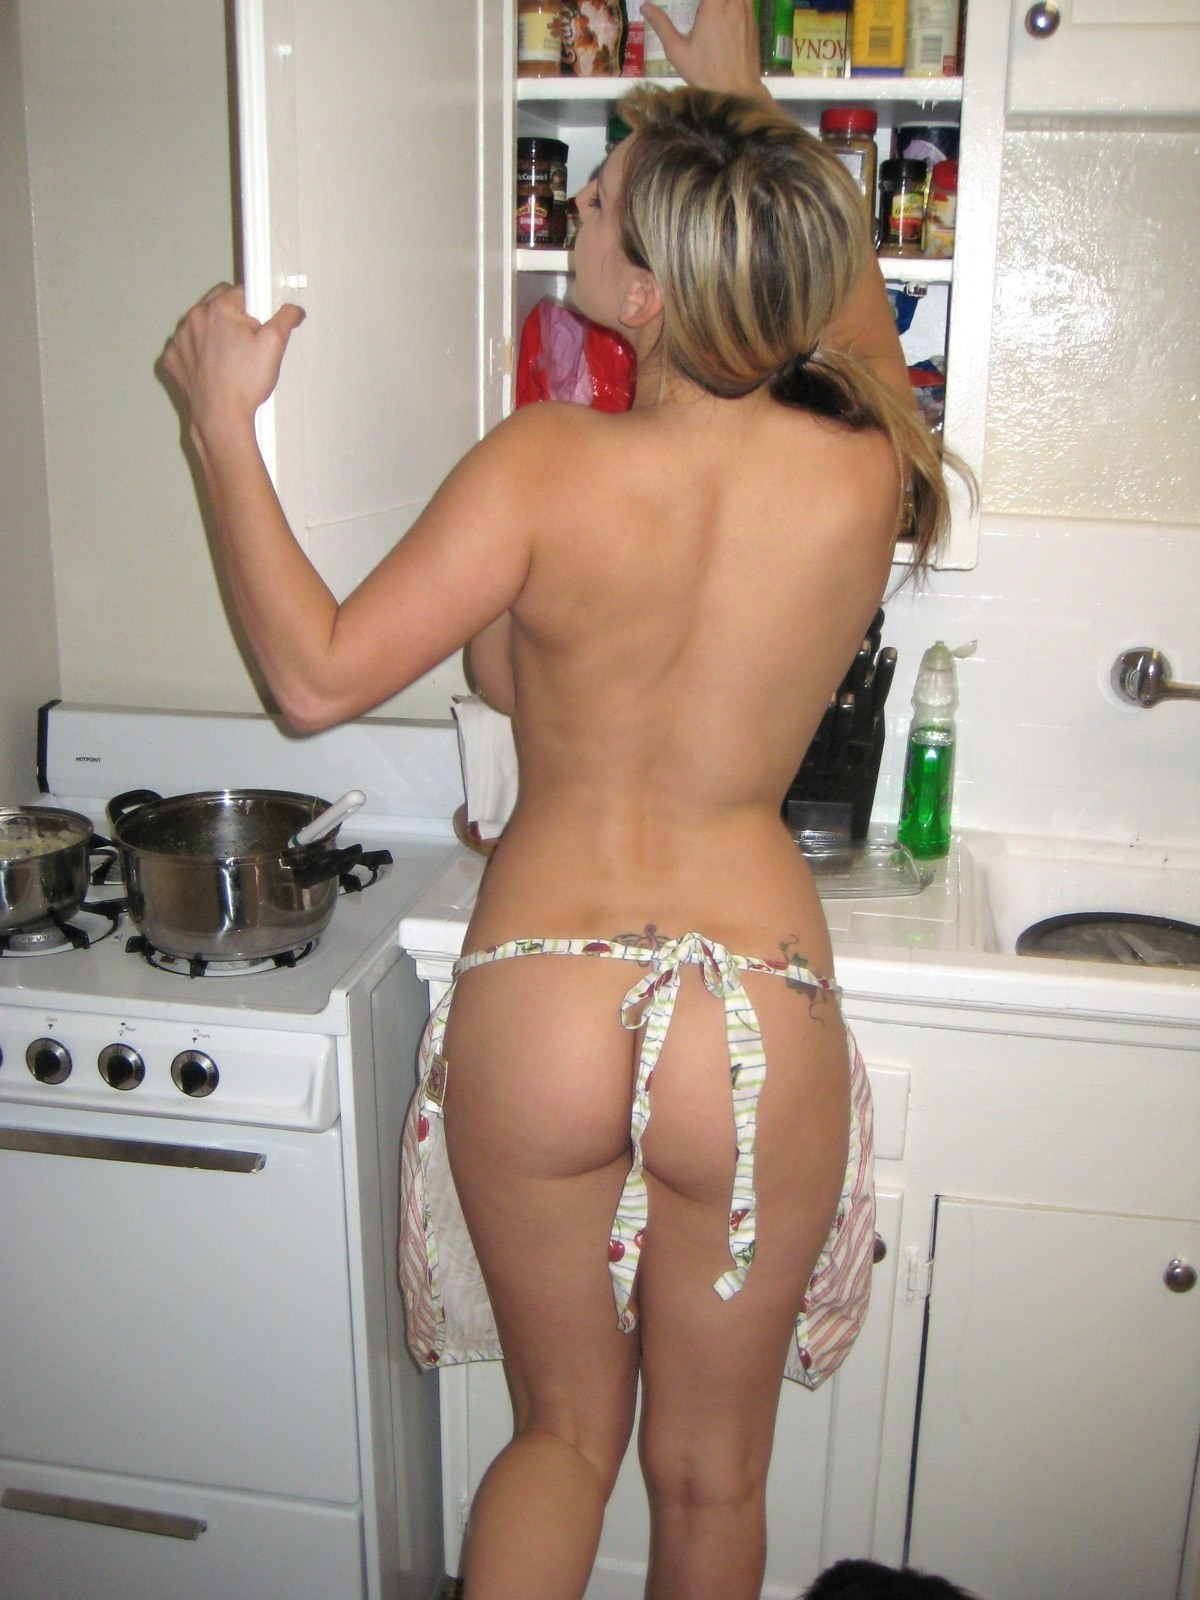 sexy-girl-cooking-ass-college-chicks-self-shot-nudes